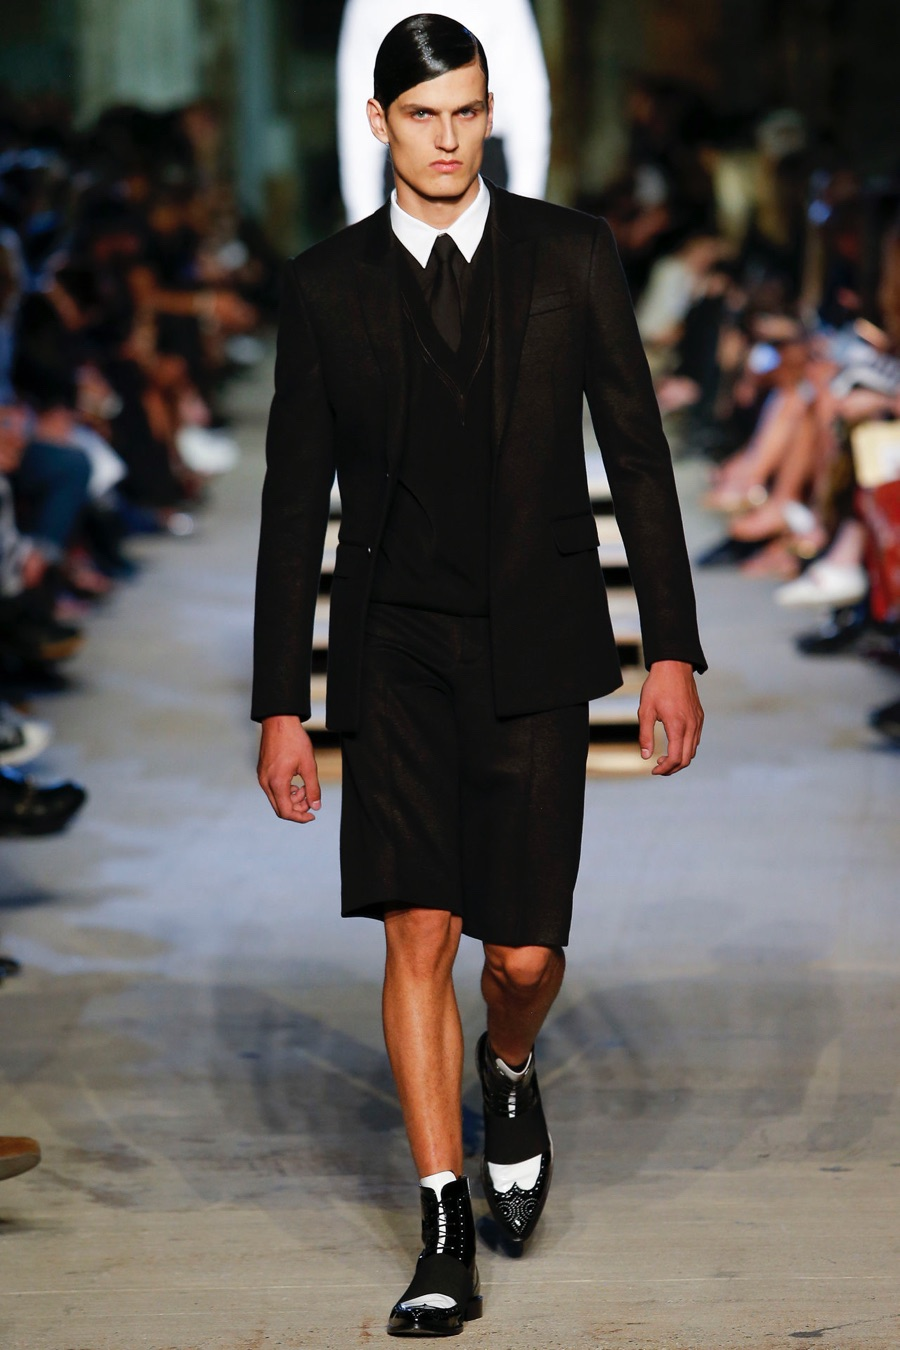 Givenchy-Spring-Summer-2016-Menswear-Collection-New-York-Fashion-Week-008.jpg